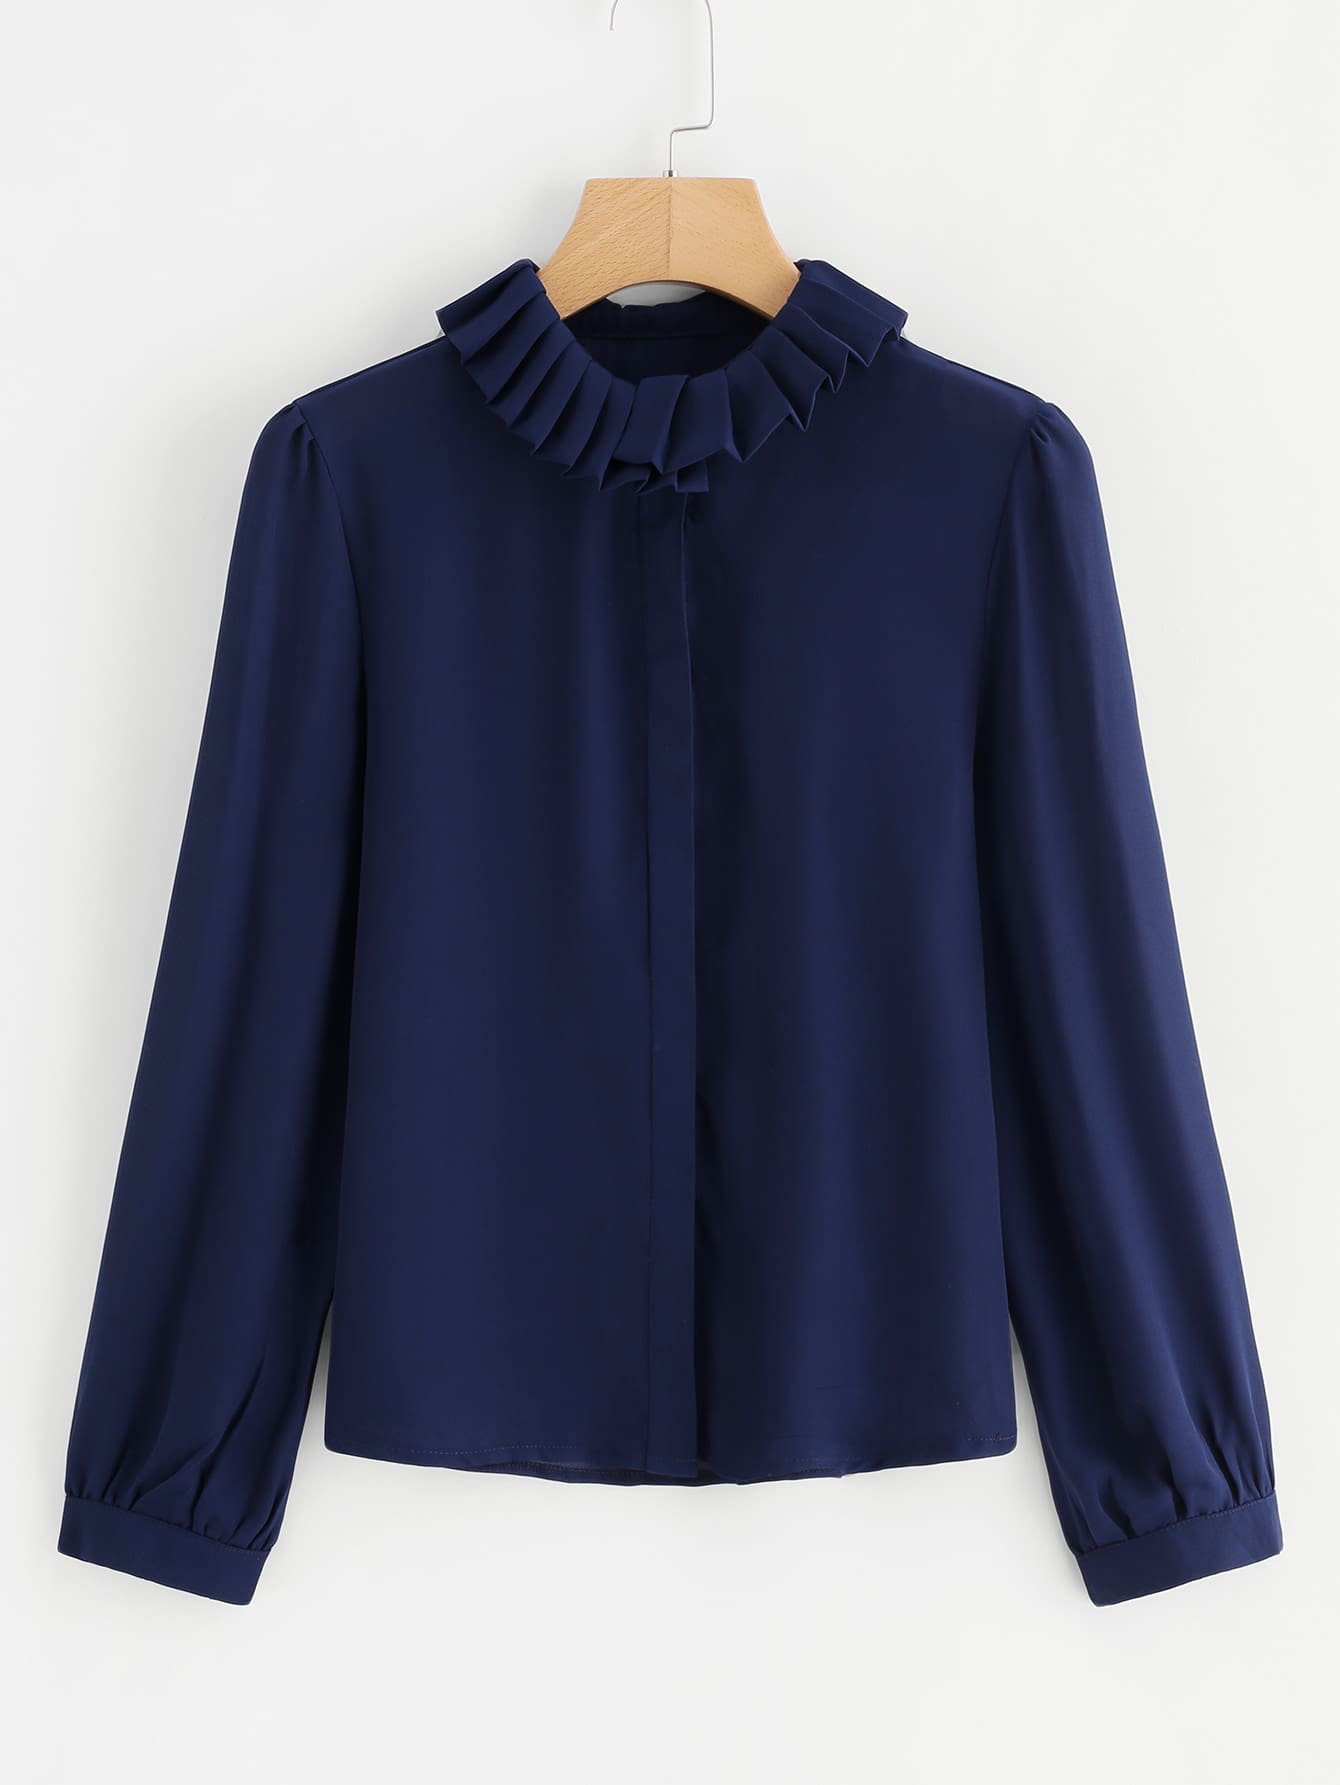 Pleated Collar Blouse pleated button collar blouse